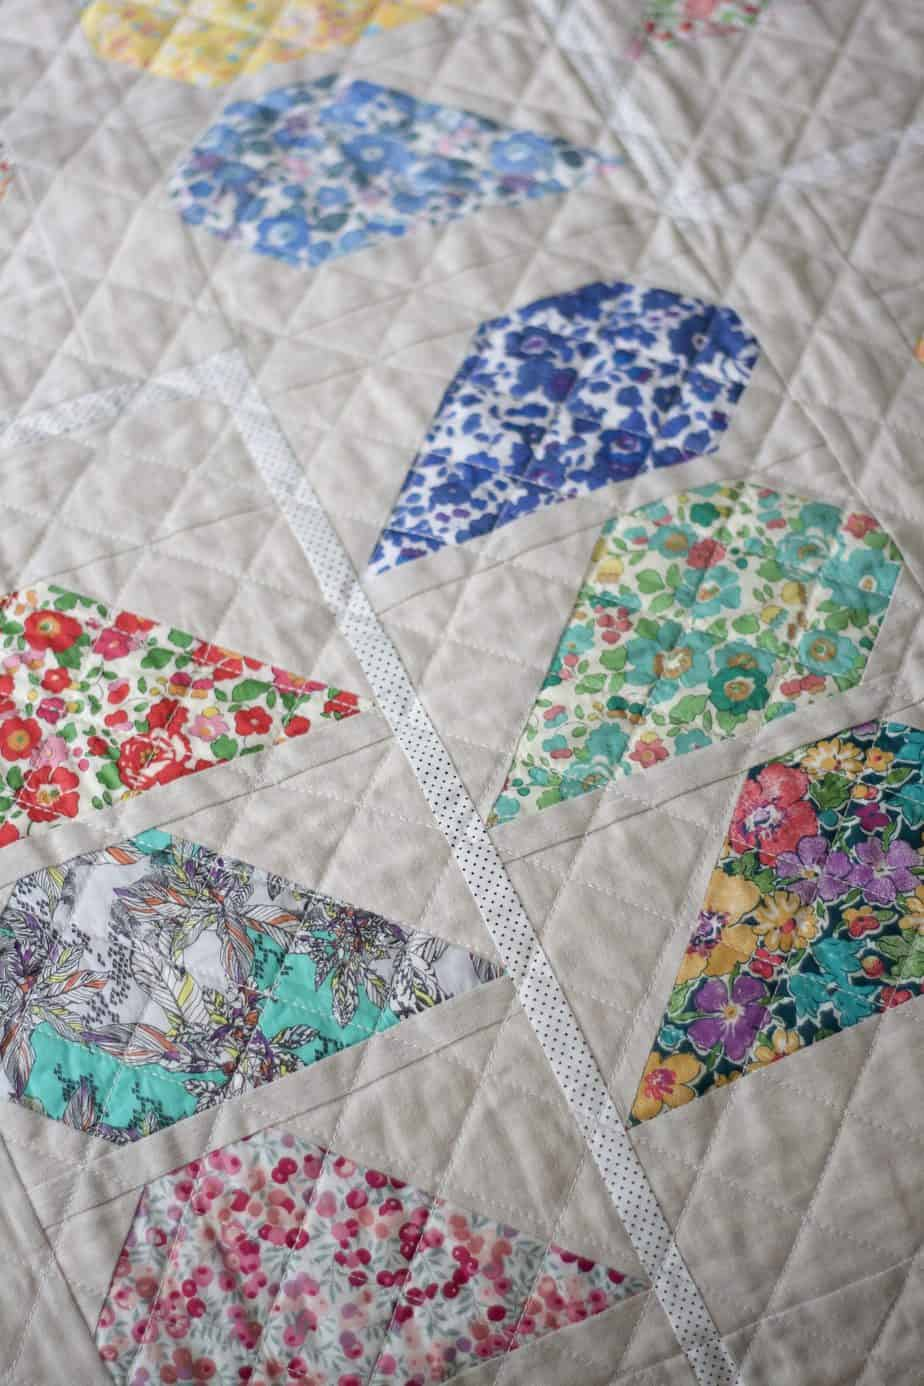 Close up of quilt featuring Liberty prints.